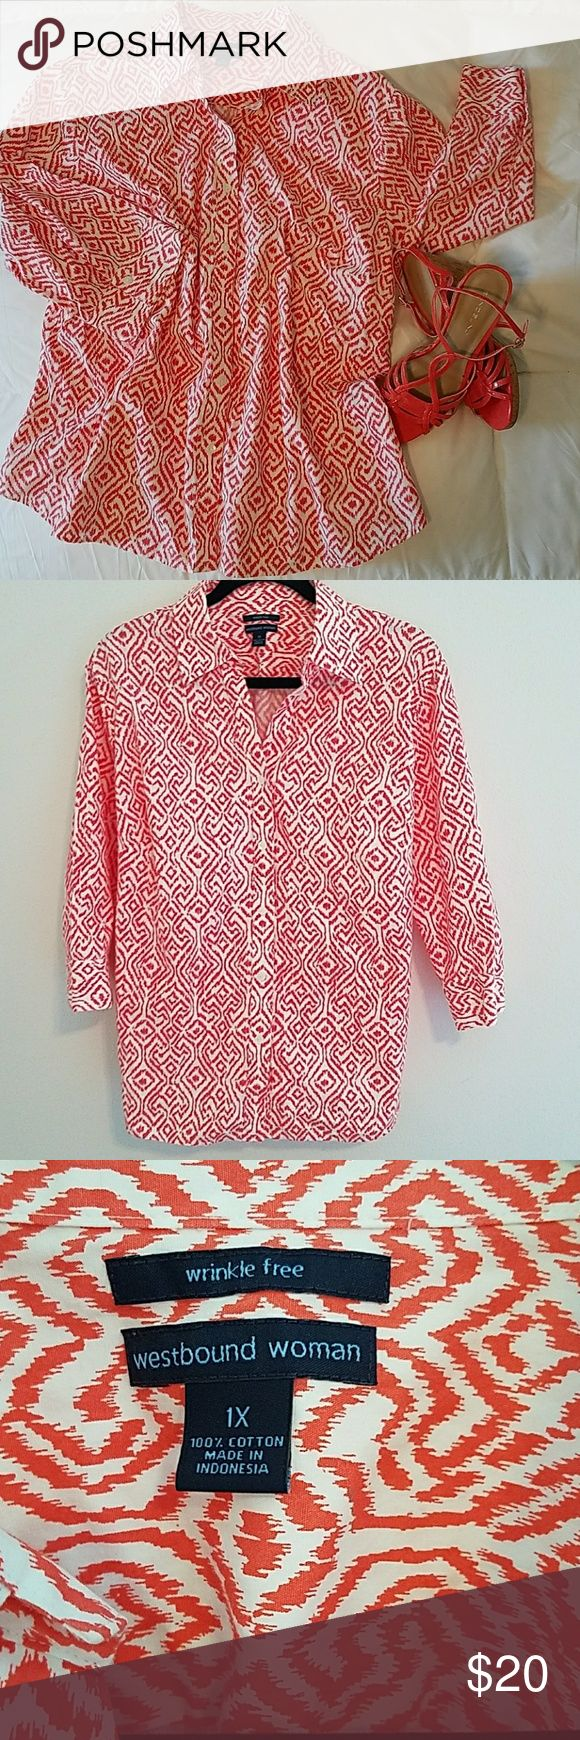 Westbound Woman button-down chevron top sz 1X Westbound Woman button-down chevron top with 3/4 sleeves sz 1X. Very nice peachy orange color Aztec print top, has small side slits, size 1X 100% cotton wrinkle-free. Condition is very good. 🌴 Westbound Tops Button Down Shirts